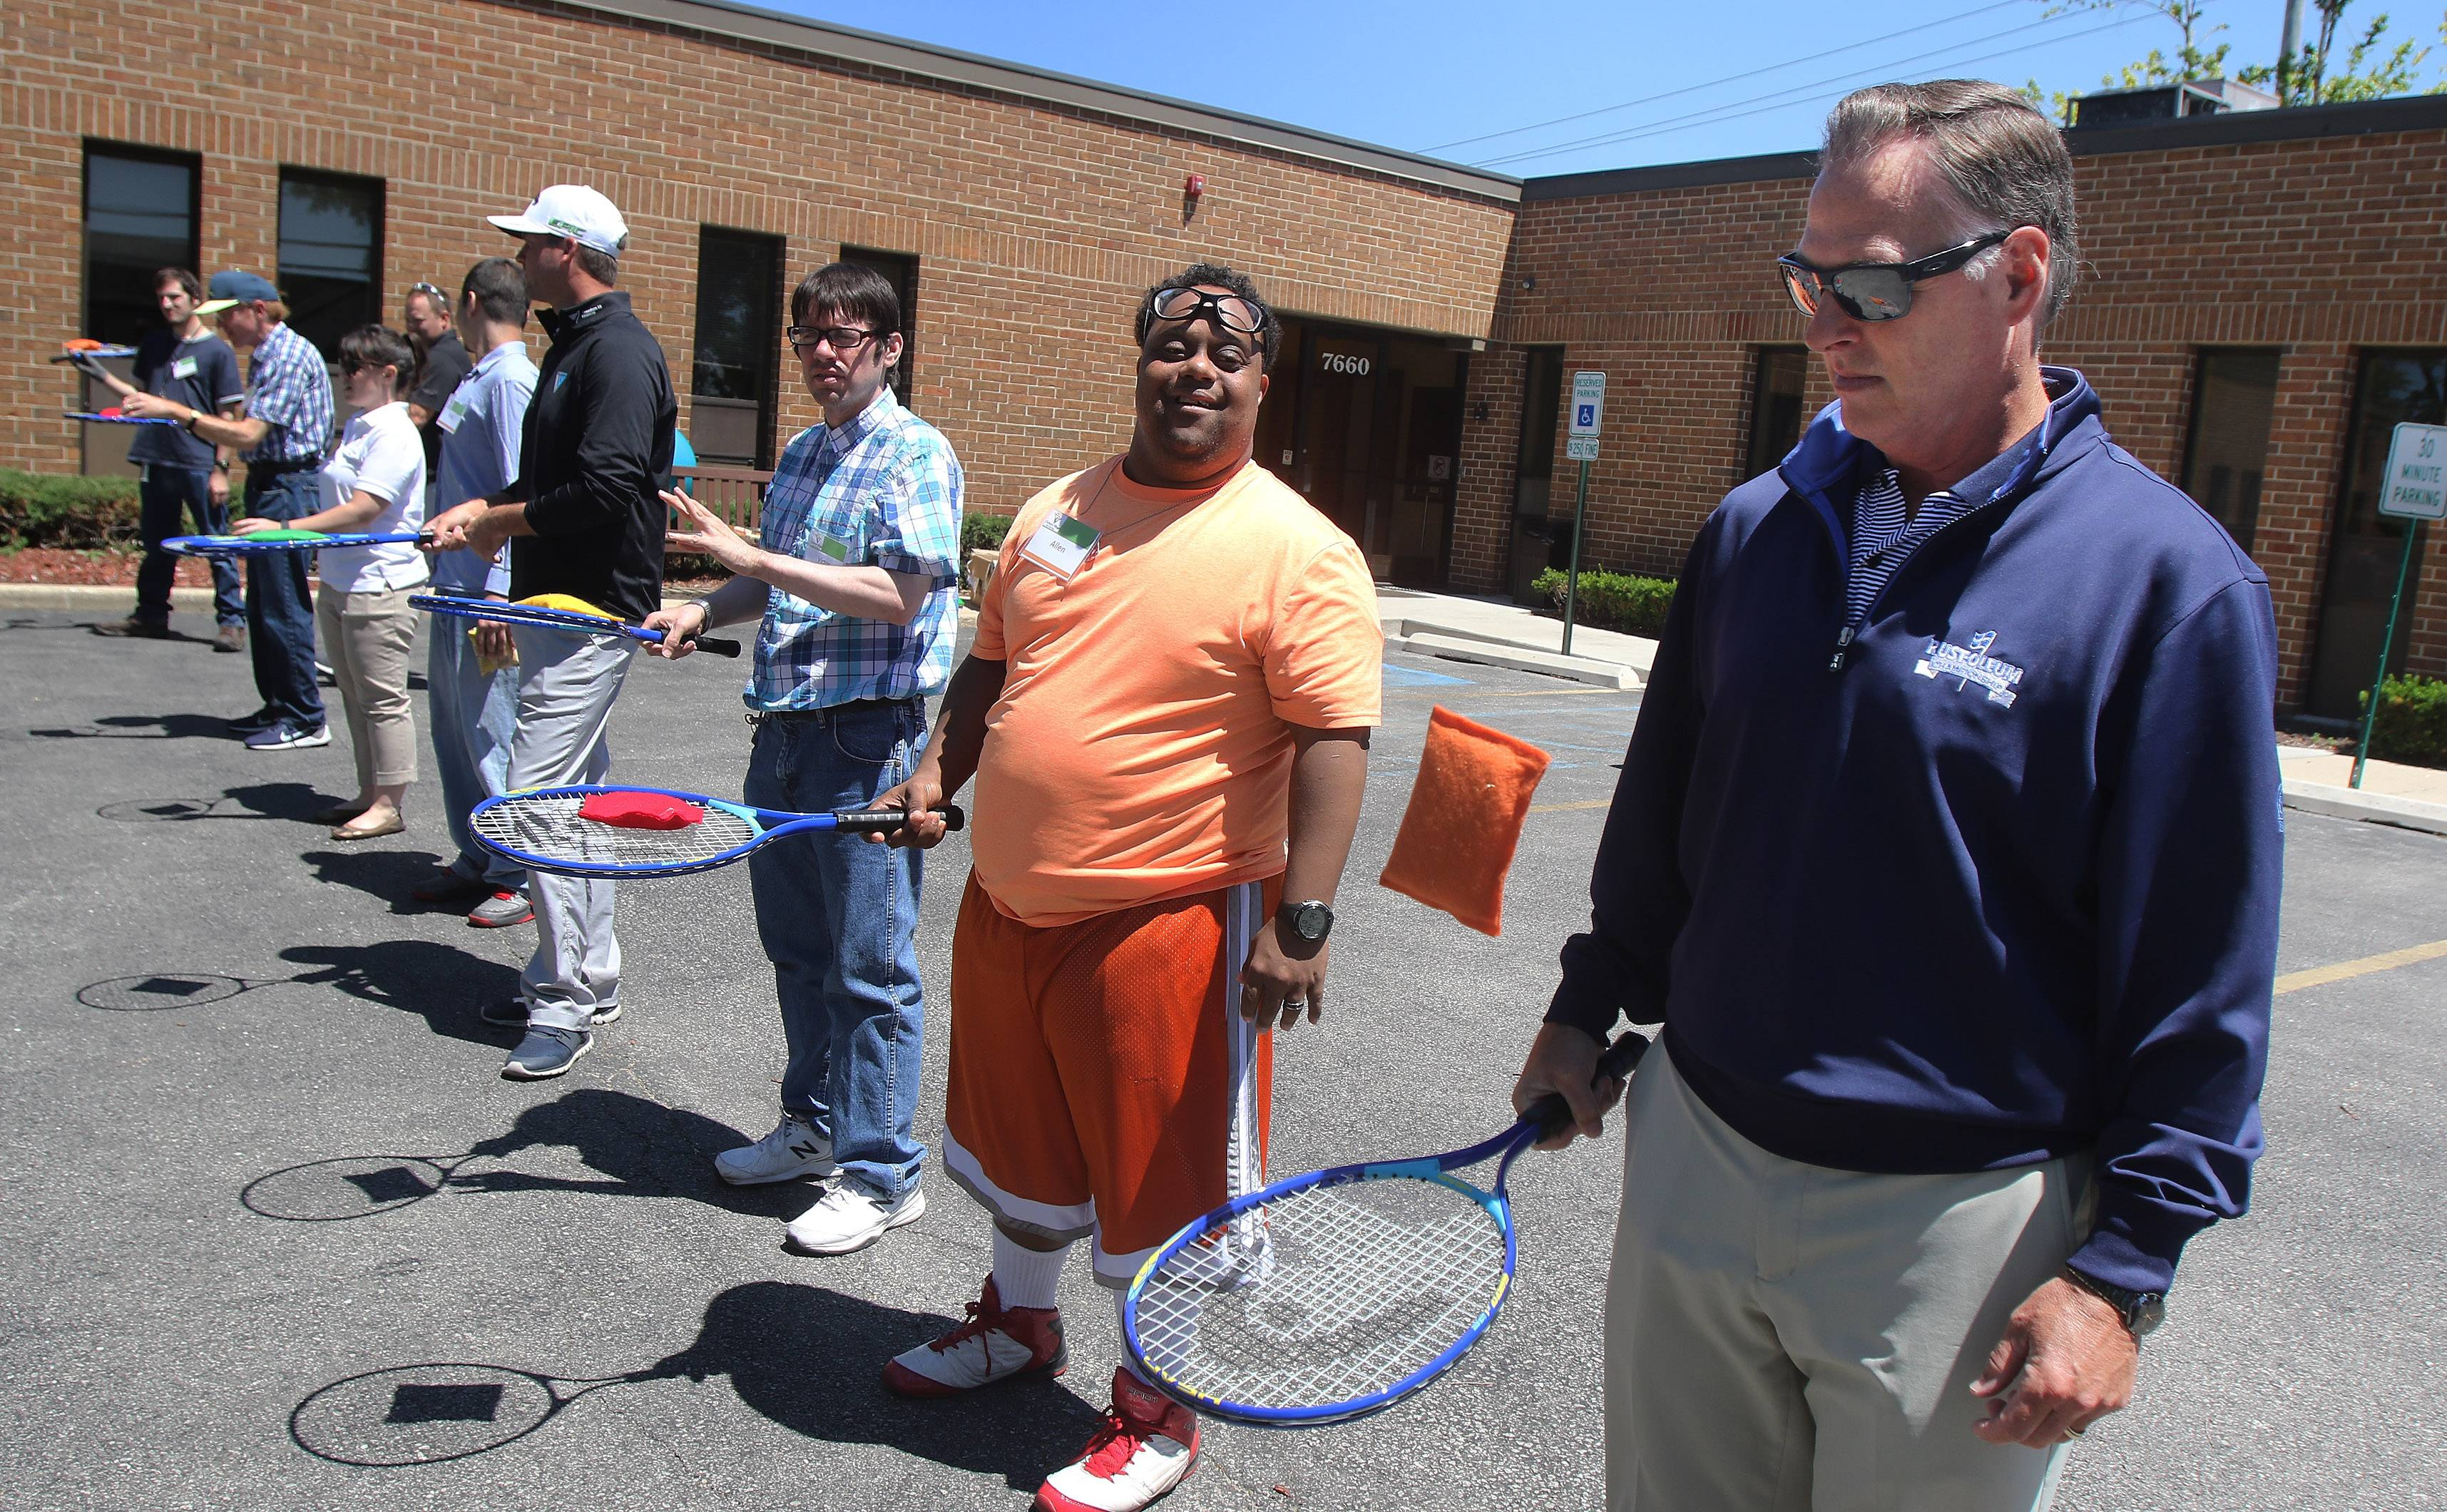 Rust-Oleum President and COO Tom Reed, right, joined golfers and residents to play games of adaptive tennis Tuesday.